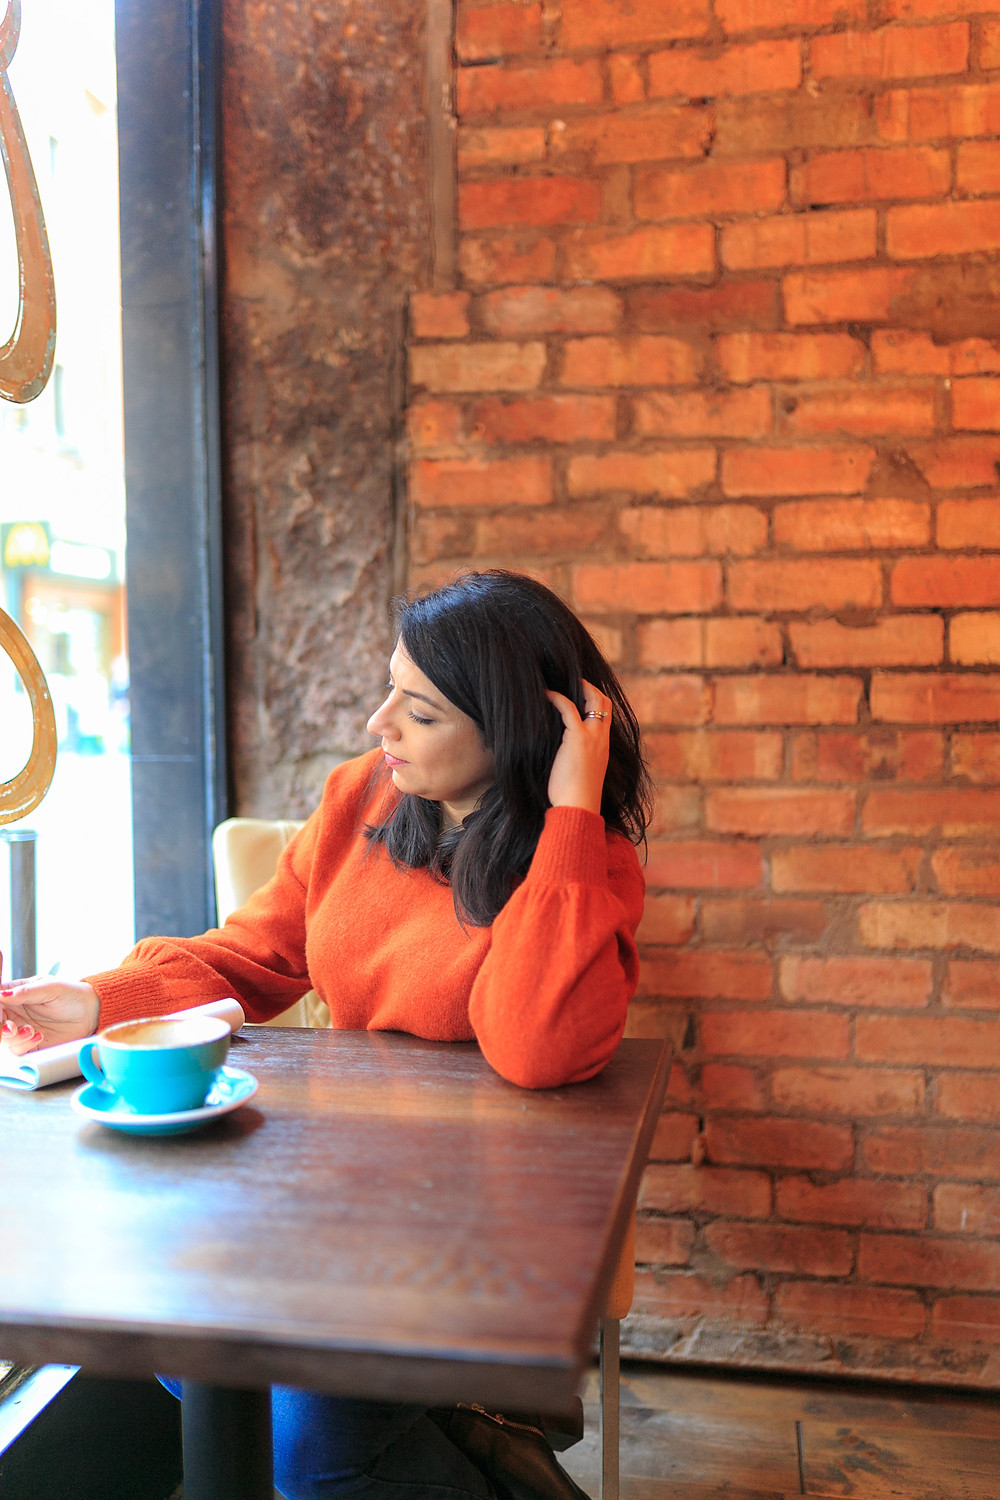 In coffee shop during brand shoot in Leicester